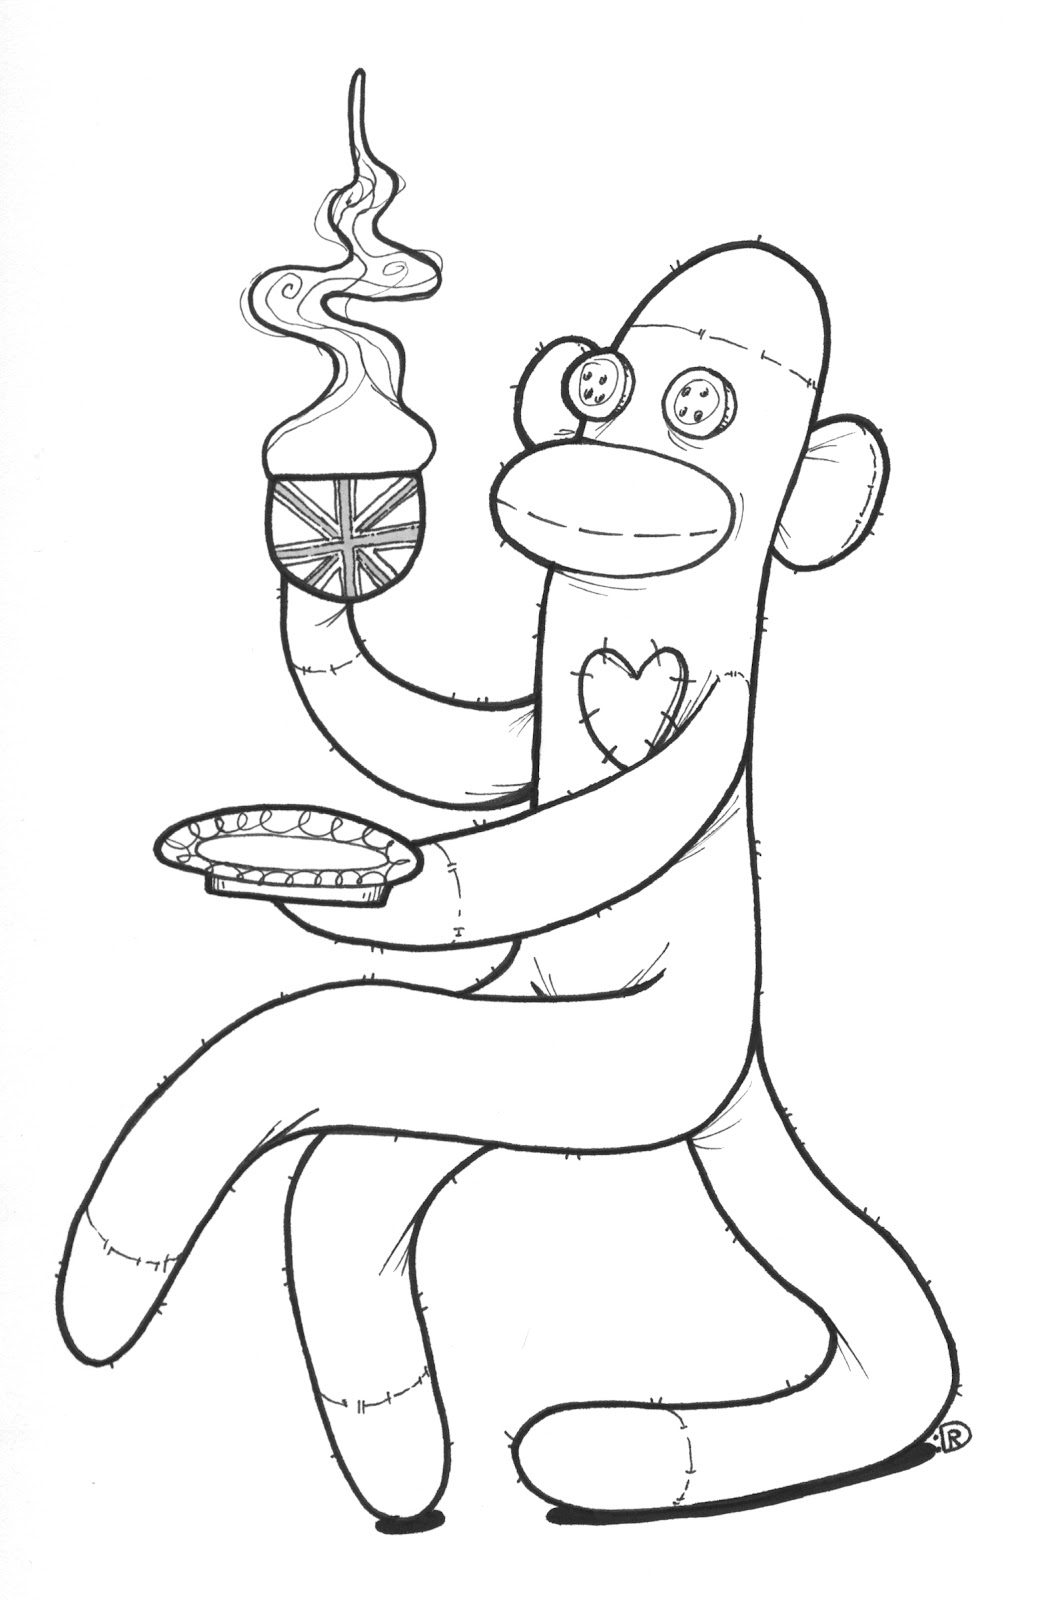 Draw Monkey September